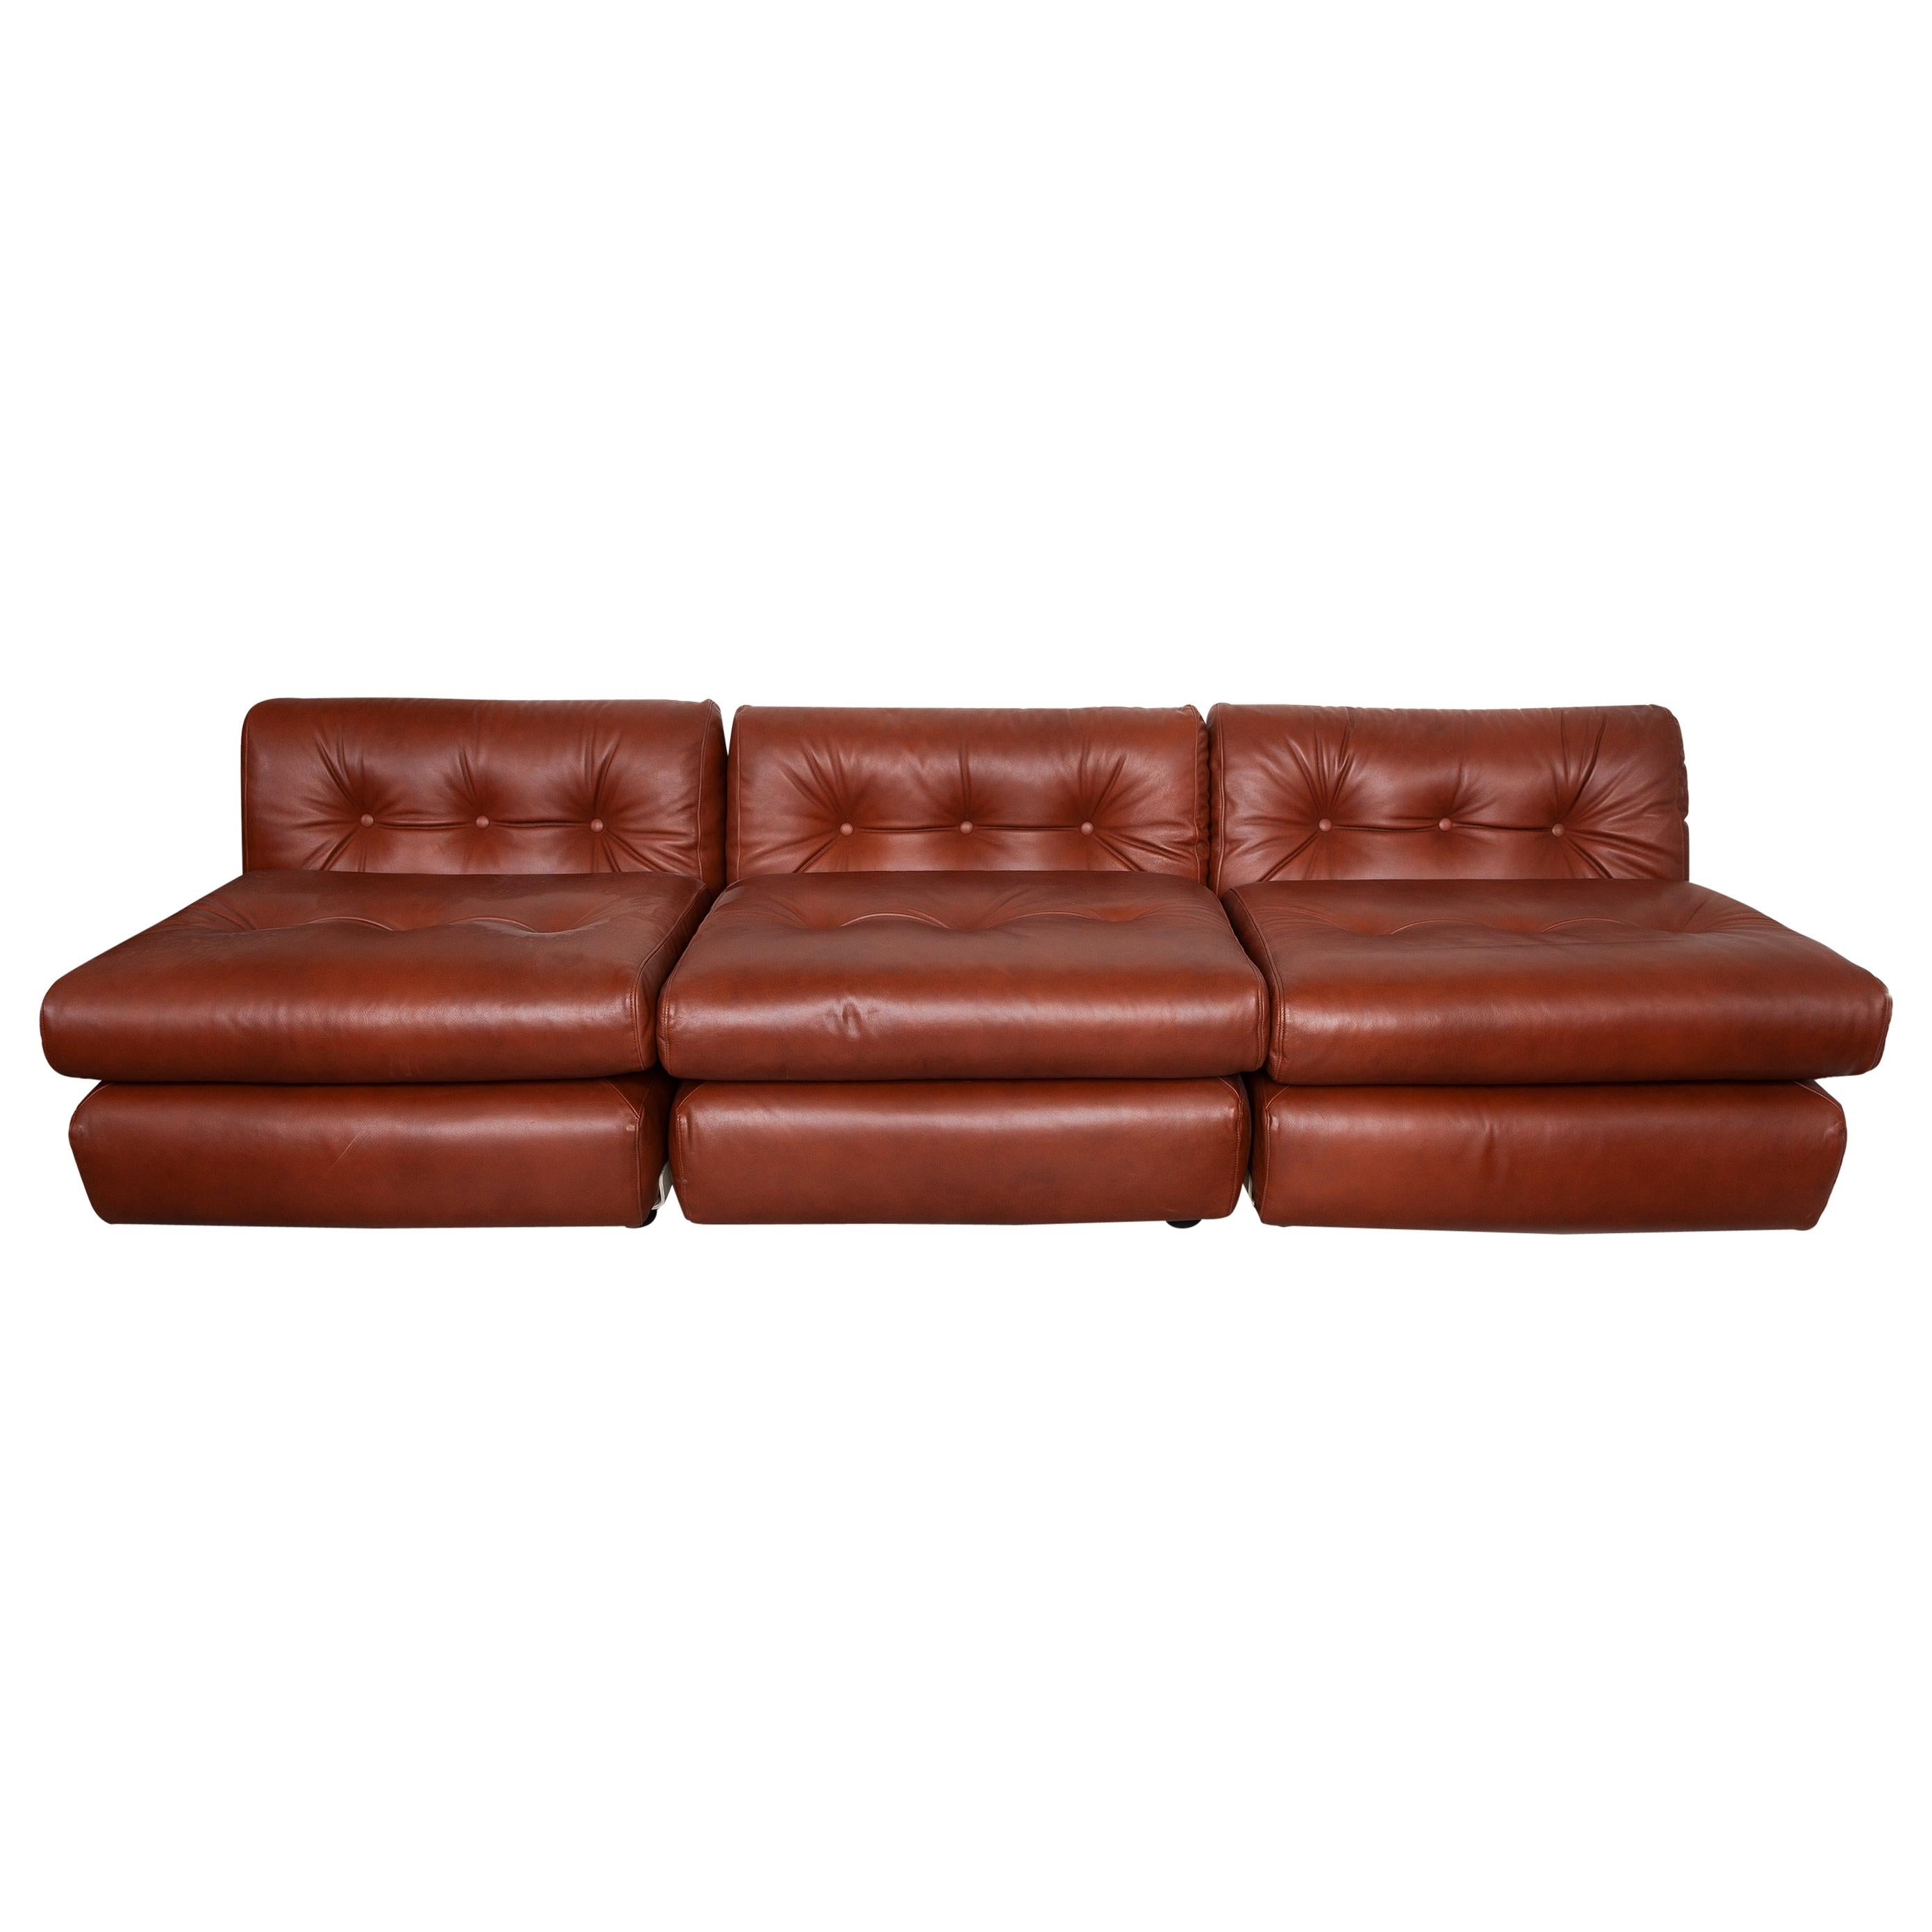 """Set of Three Modular Brown Leather """"Amanta"""" Lounge Chairs by Mario Bellini Italy"""